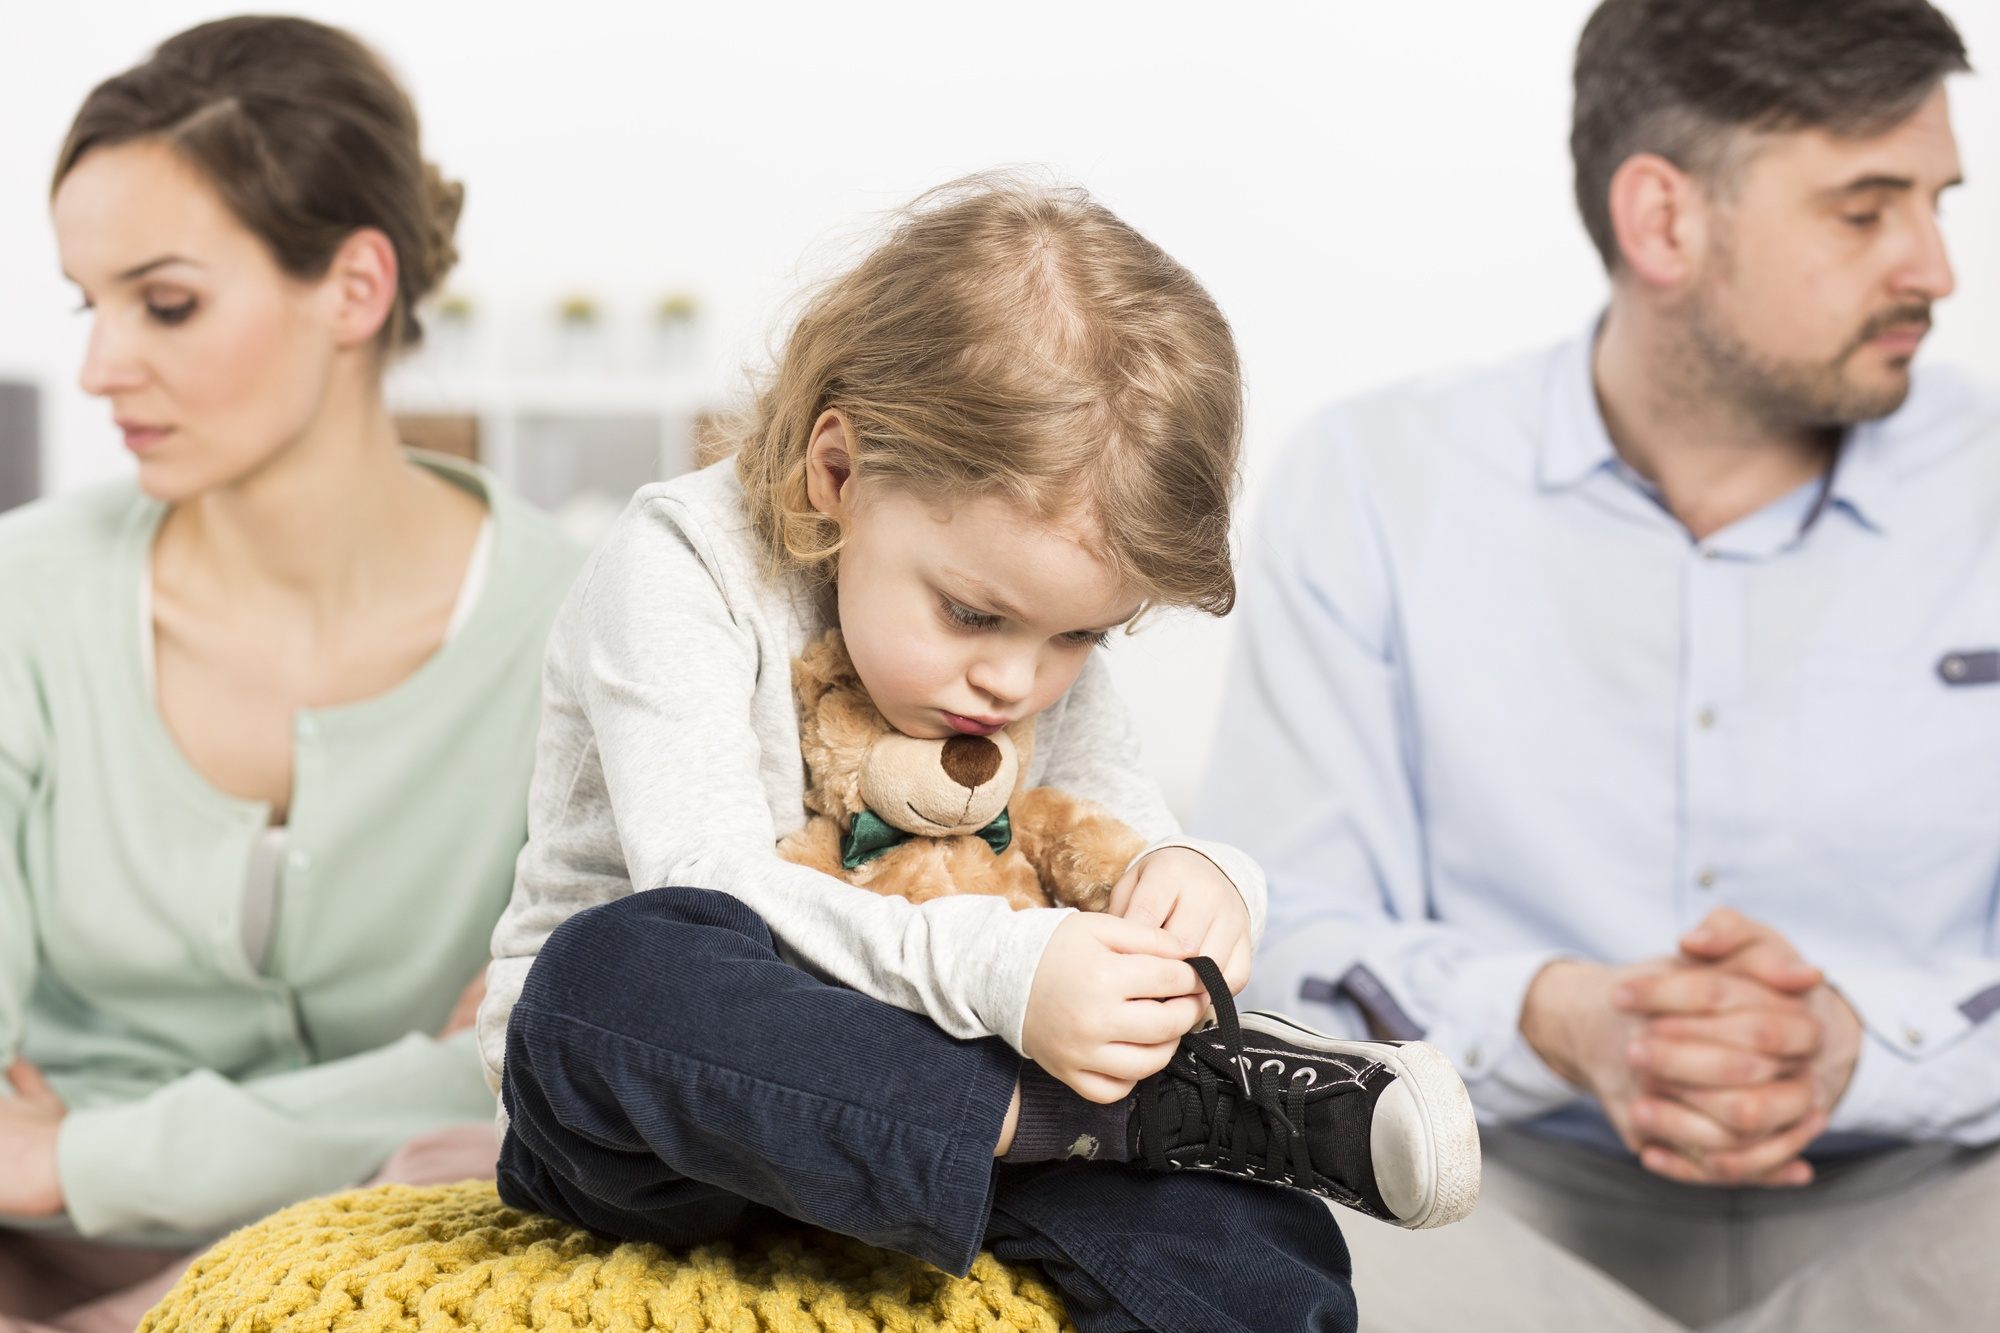 10 Co-Parenting Tips for After a Divorce